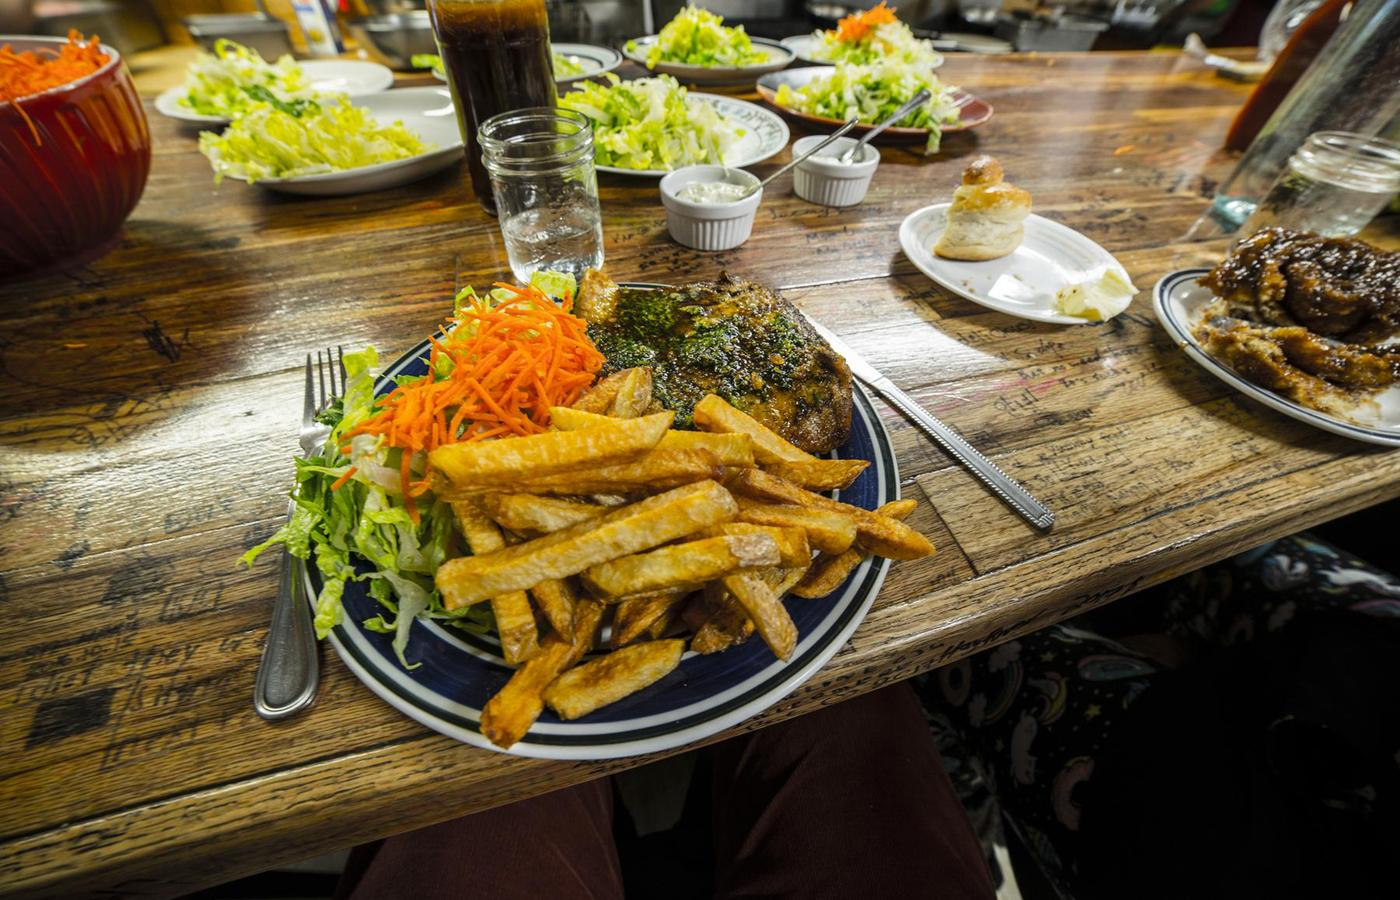 A large plate of fish and chips sits on a wood table looking delicious.